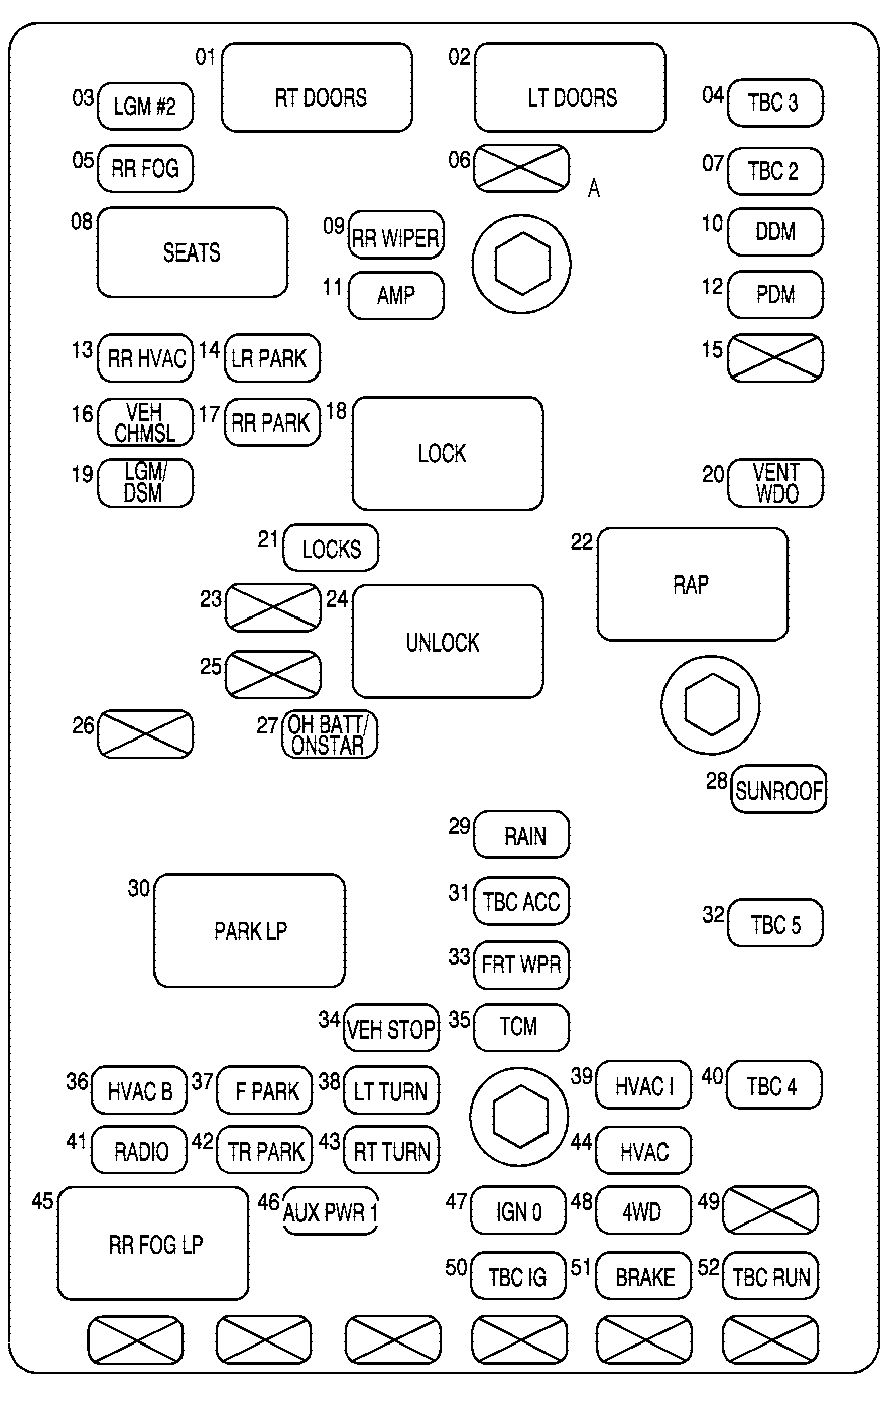 gmc envoy 2006 fuse box diagram auto genius rh autogenius info 2006 gmc envoy fuse box diagram 2009 gmc envoy fuse box diagram